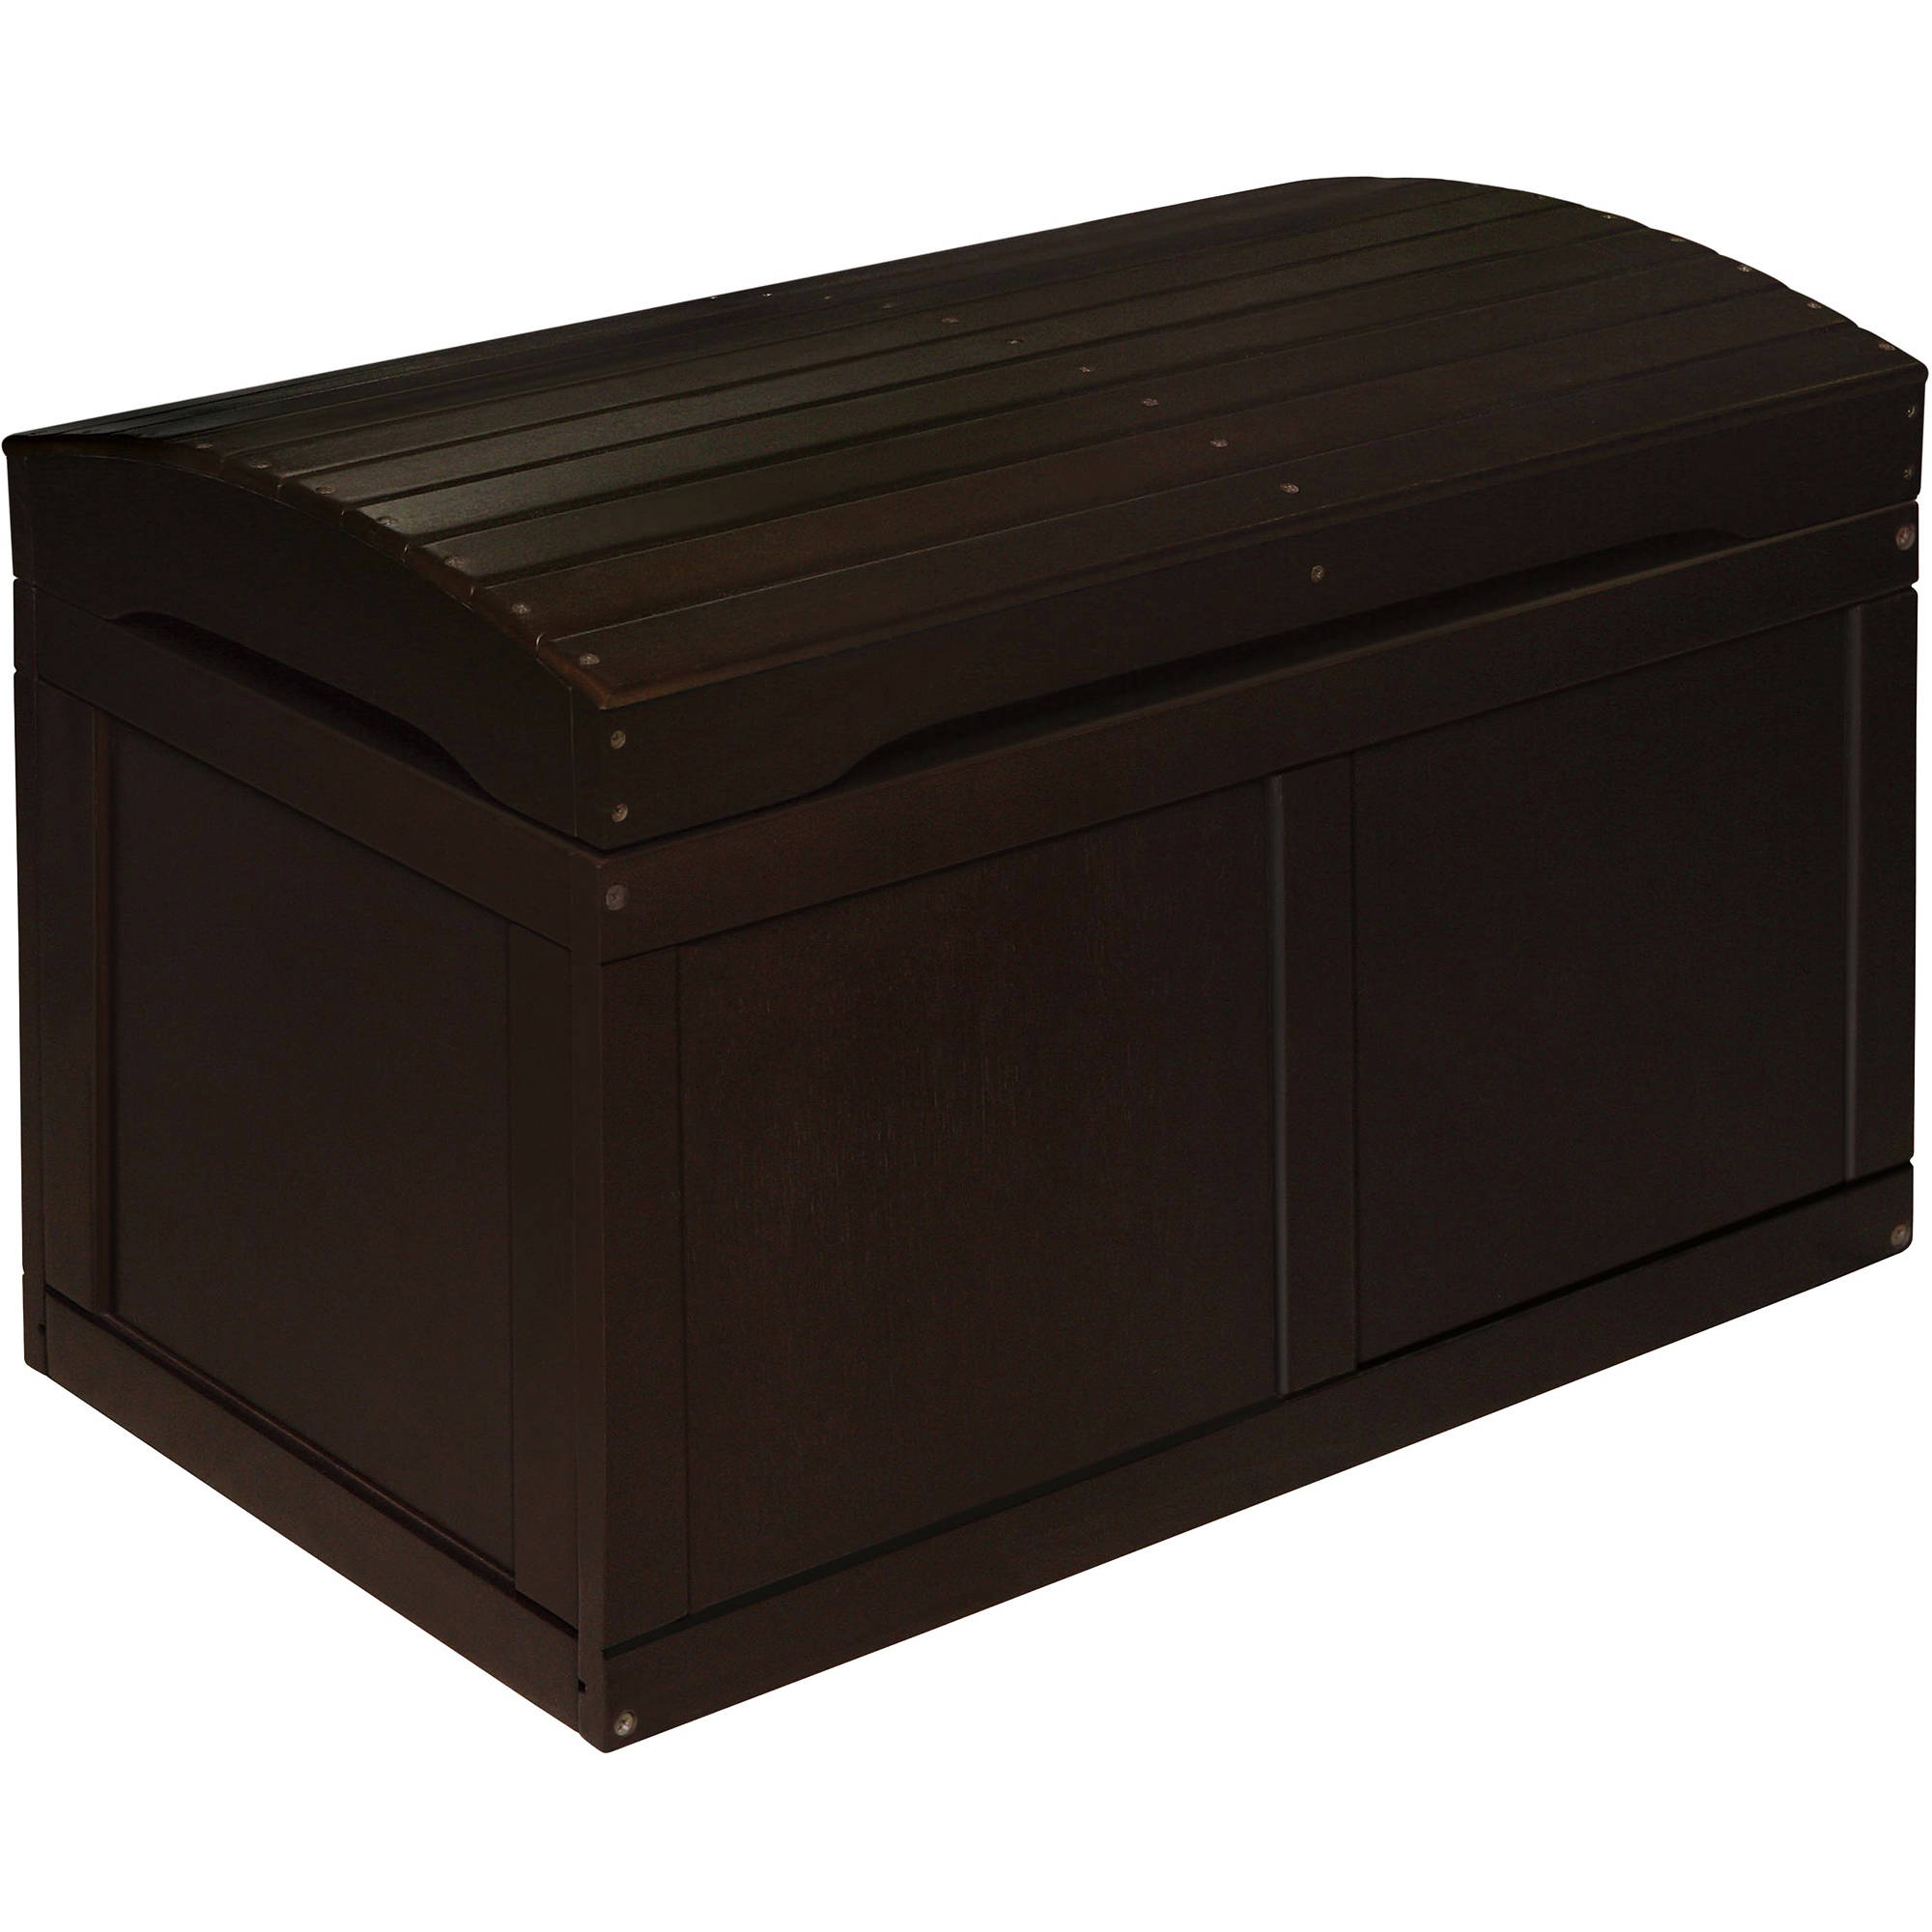 Badger Barrel Top Wood Toy Chest, Multiple Colors